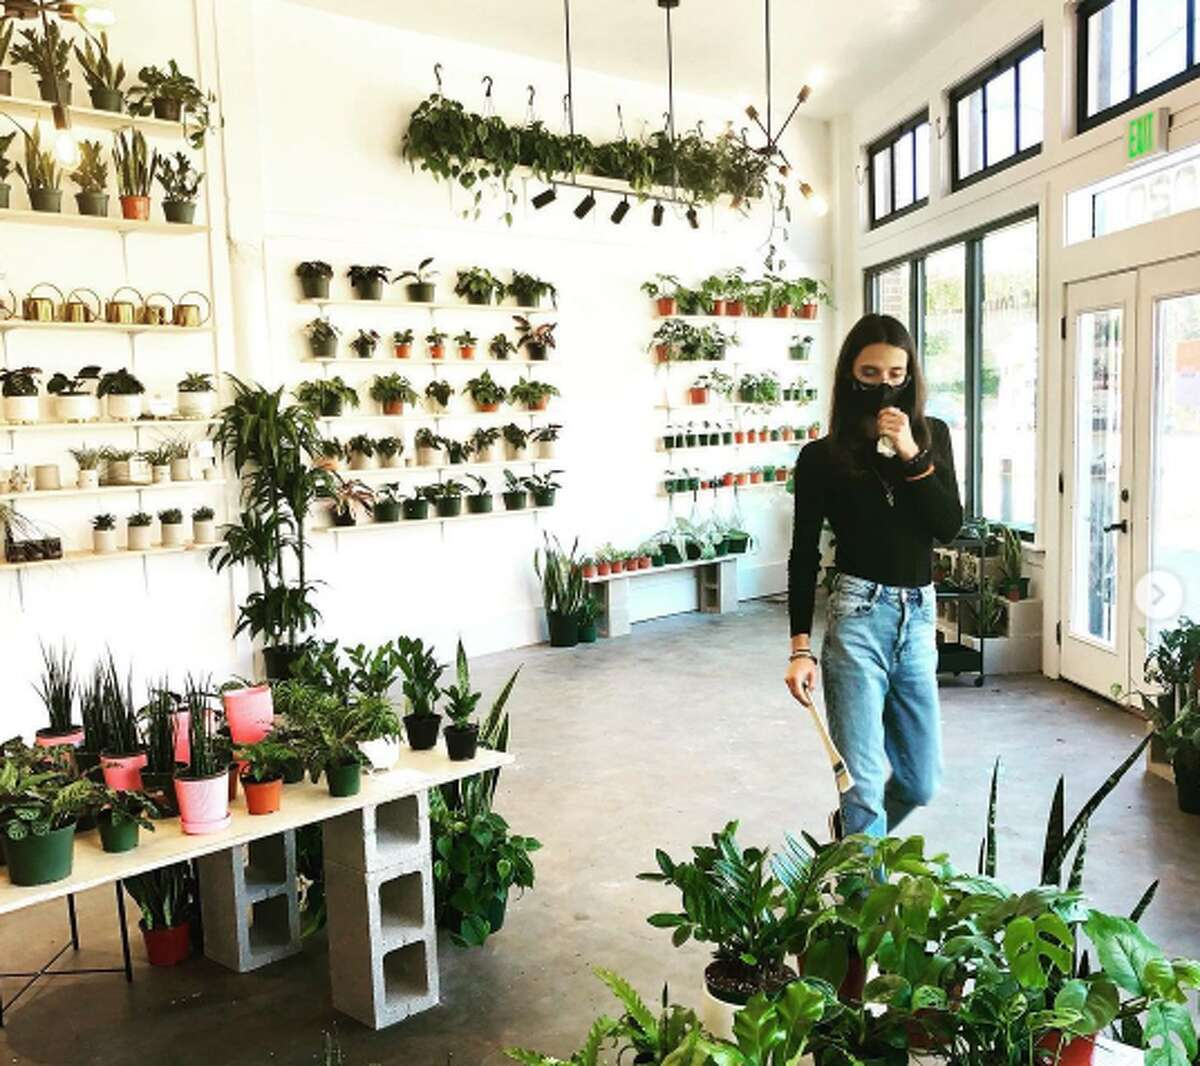 """At the shop, plant lovers can find a range of specimens like alocasia black velvet, Monstera Peru, Sansevieria shark fin, and Rhaphidophora tetrasperma. Additionally, the shop has lifestyle and home Texas products, such as ornaments by Ritual Pottery (a local business), body products from a Houston company, and candles from an Austin establishment. Aditya said she not only wanted to make the space about plants but also about local artists and a place where the community can come together and feel relaxed, even for those who don't leave with a product. """"I told my team they (guests) should feel loved and welcomed,"""" she said. """"Sharing the good vibes of the plants and being in that space. Not feeling pressured or guilty that you came in and left and didn't get anything. Eventually, I hope you get a plant because they are awesome."""""""